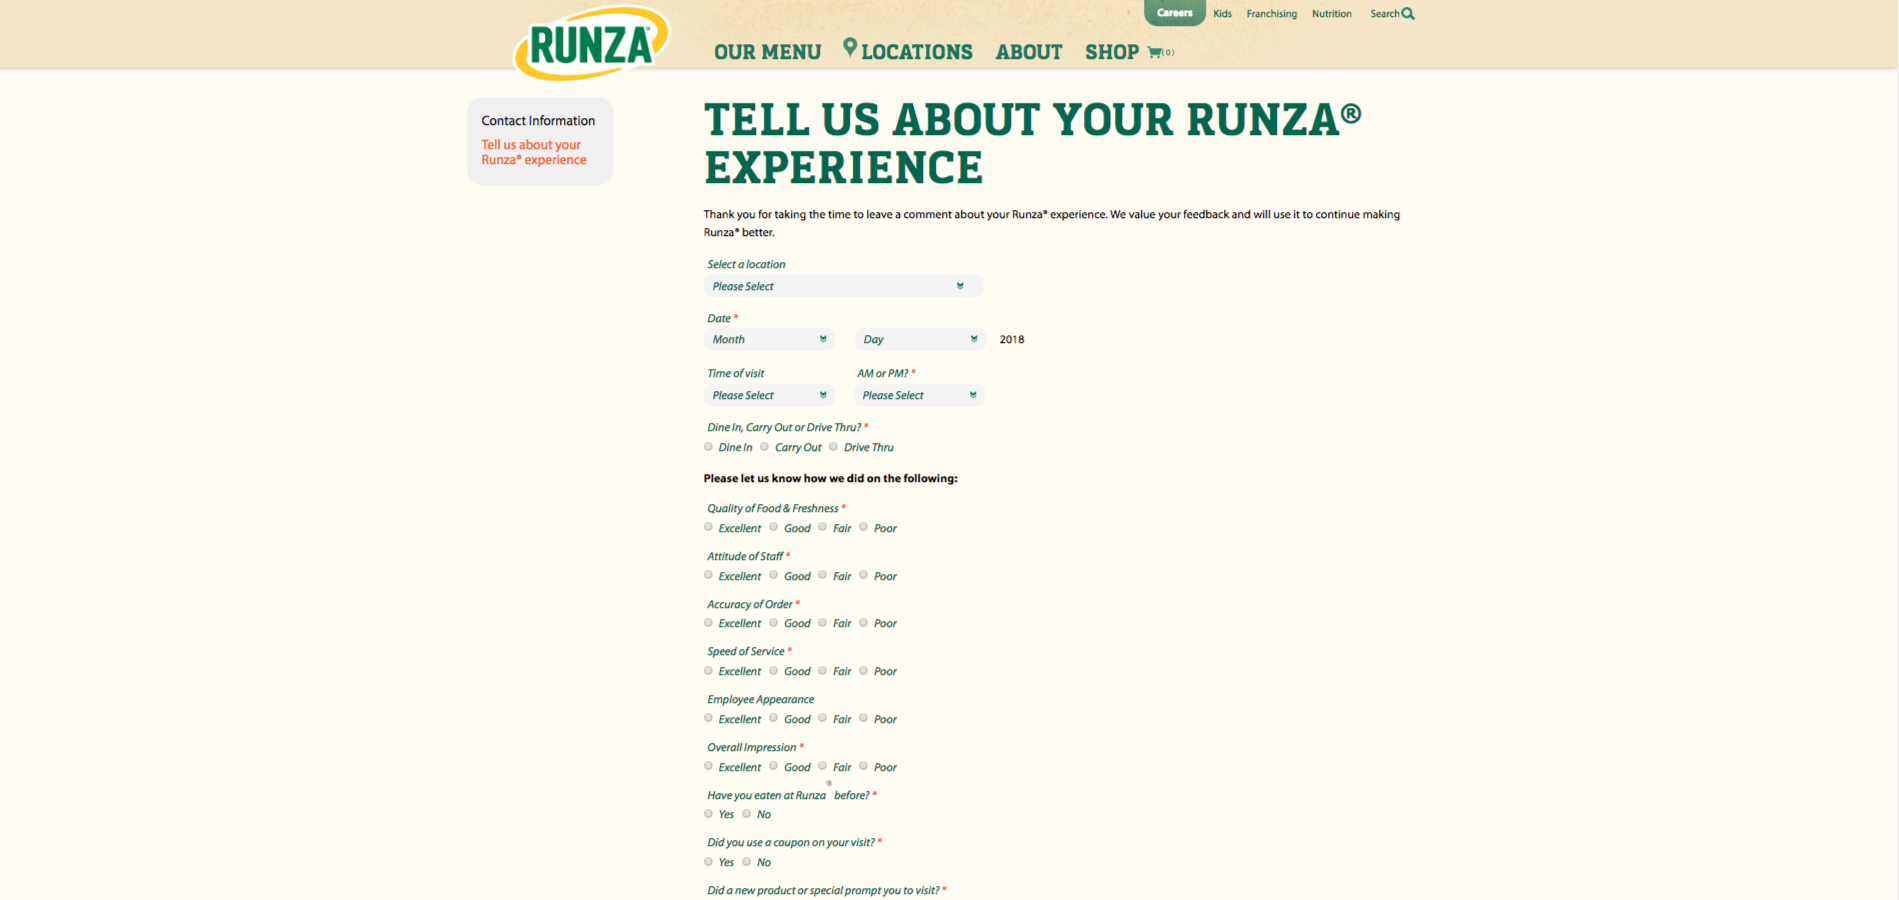 www.runza.com/survey